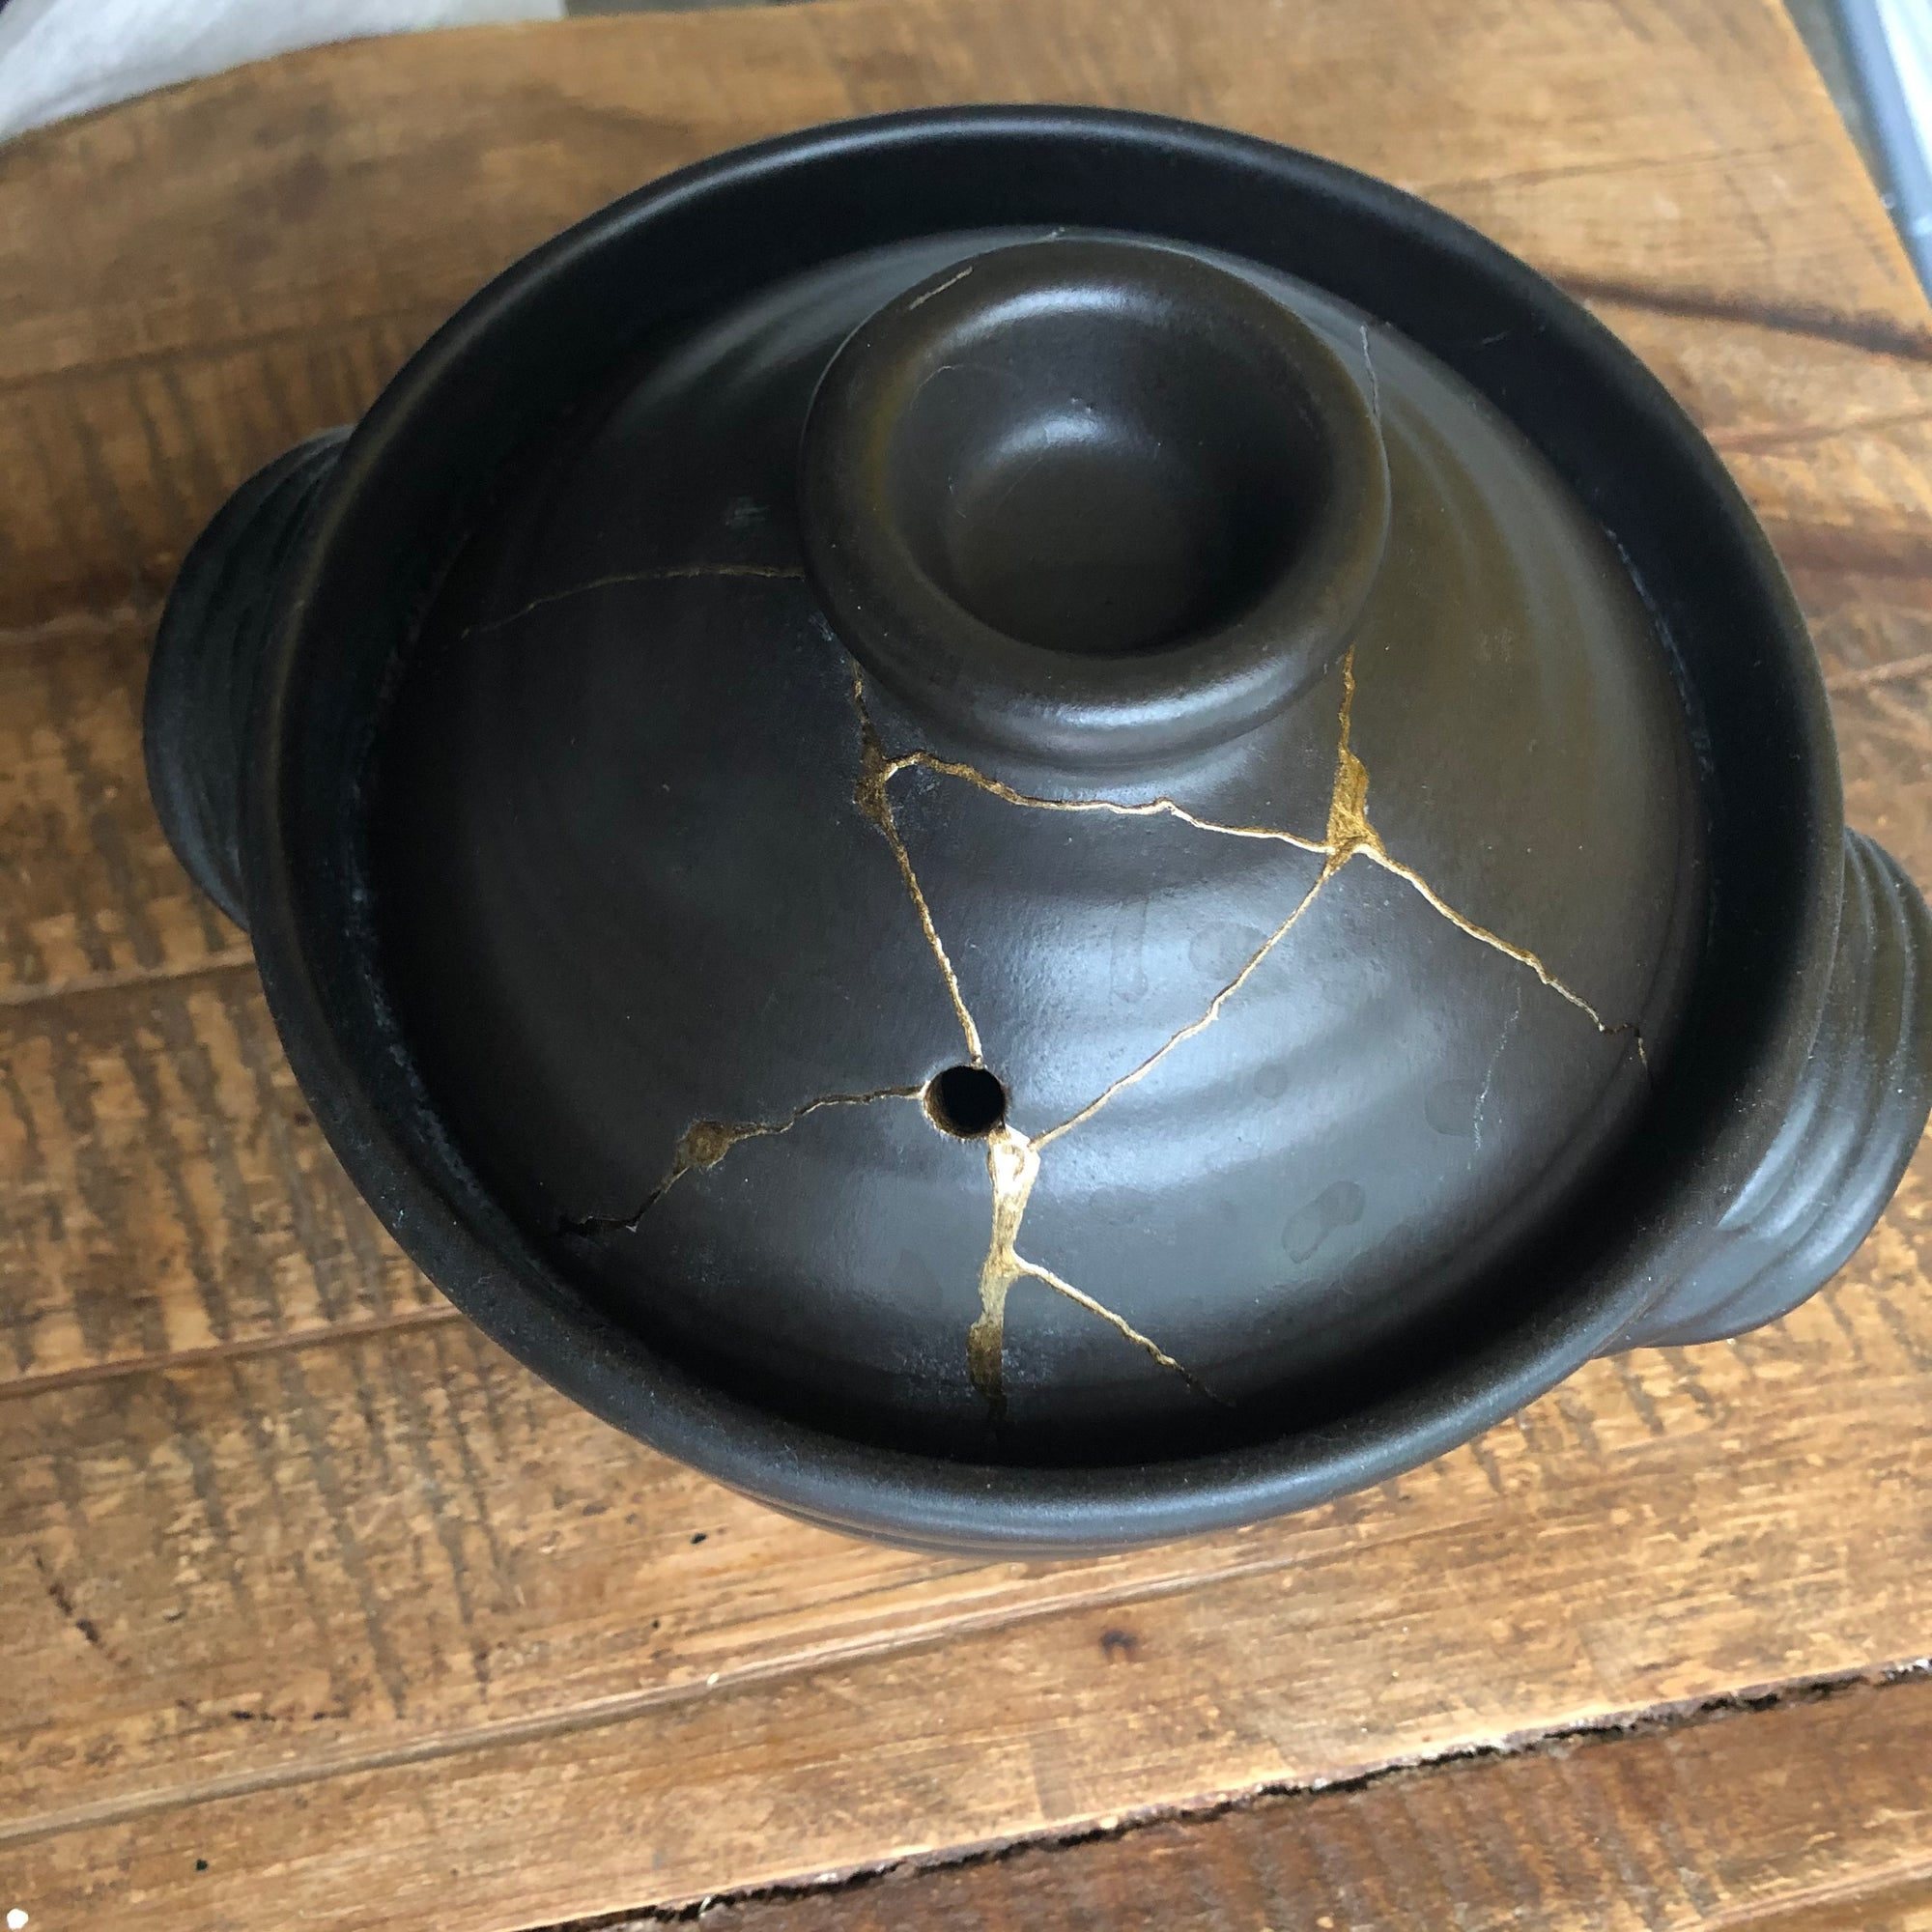 Kintsugi (金継ぎ)- The Art of Fixing Broken Pottery and Reuse